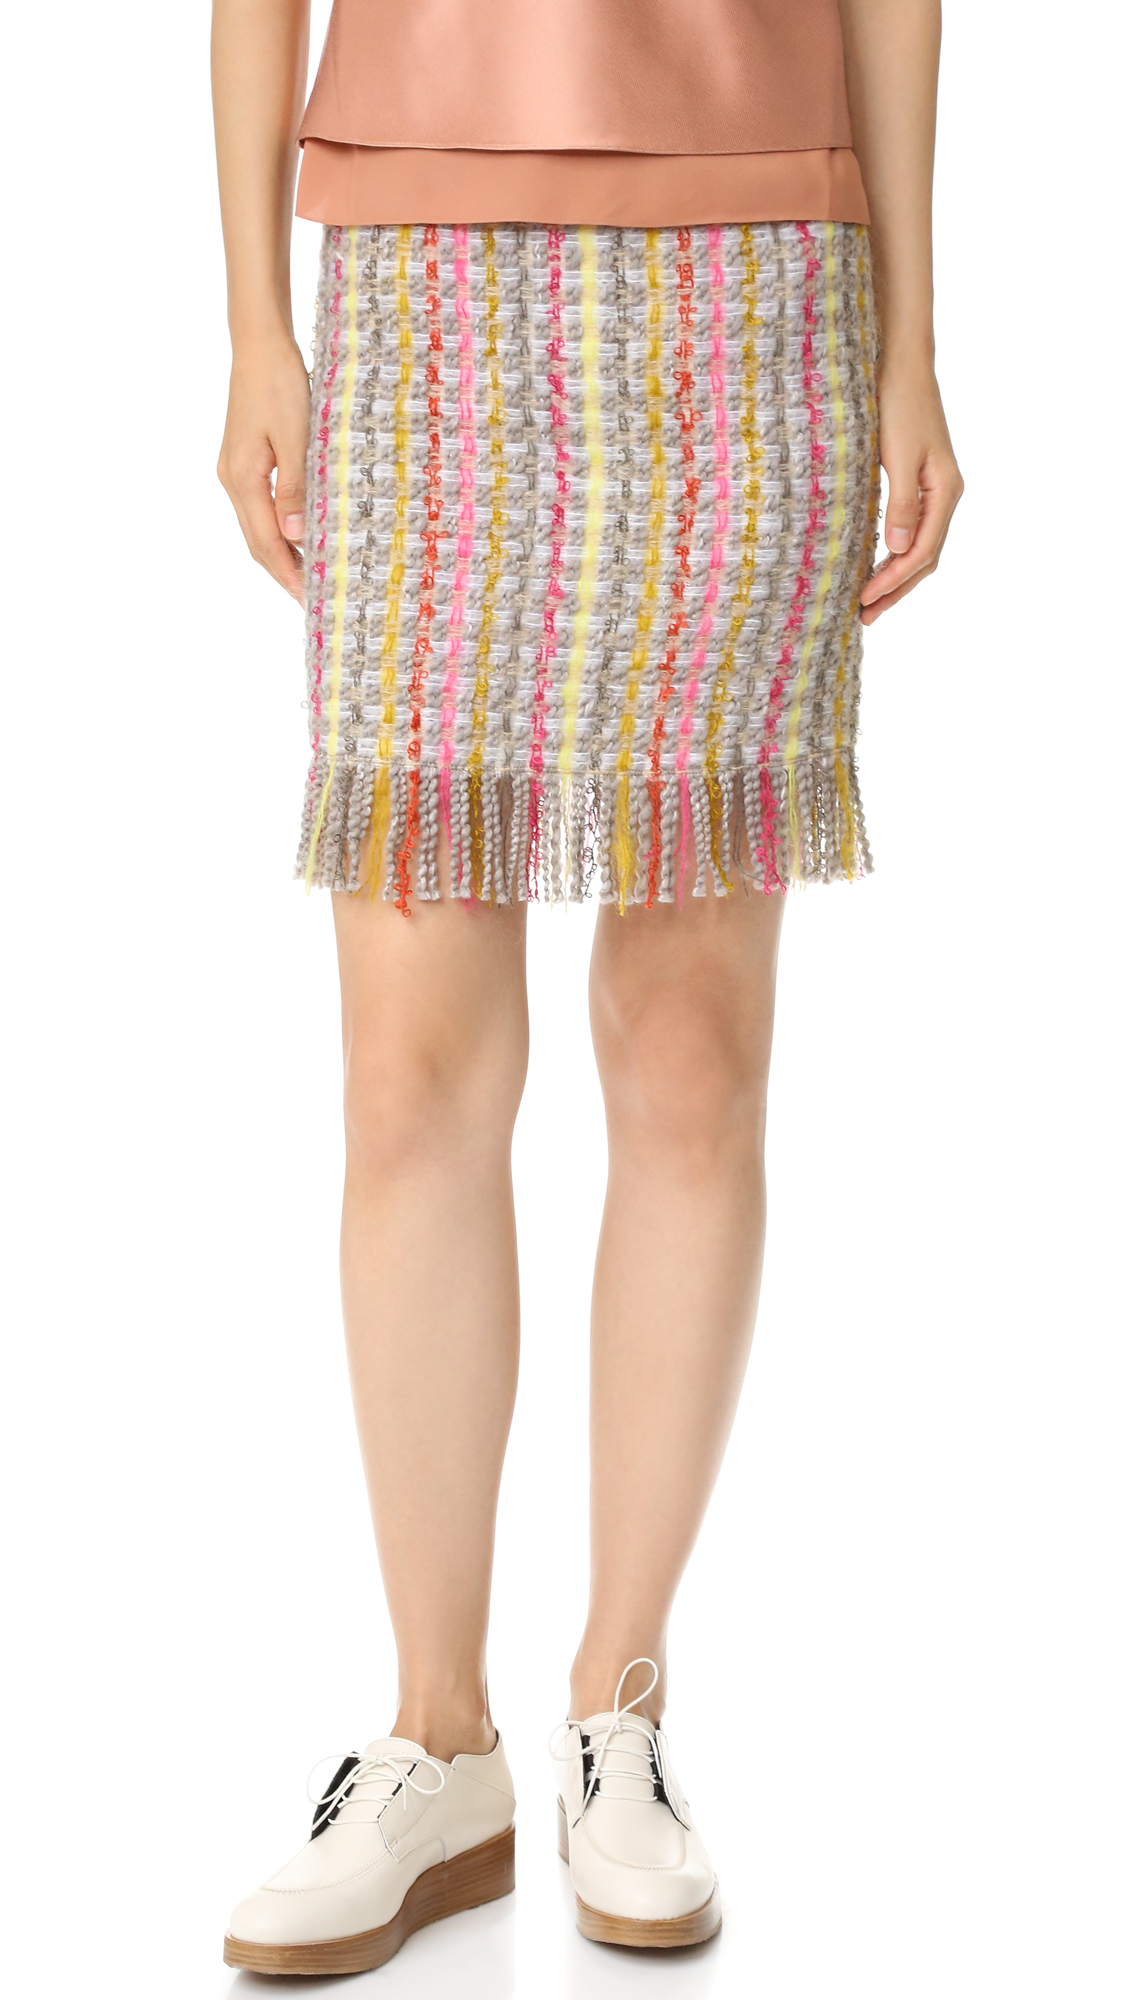 Edun Tweed Fringe Skirt - White Multi at Shopbop